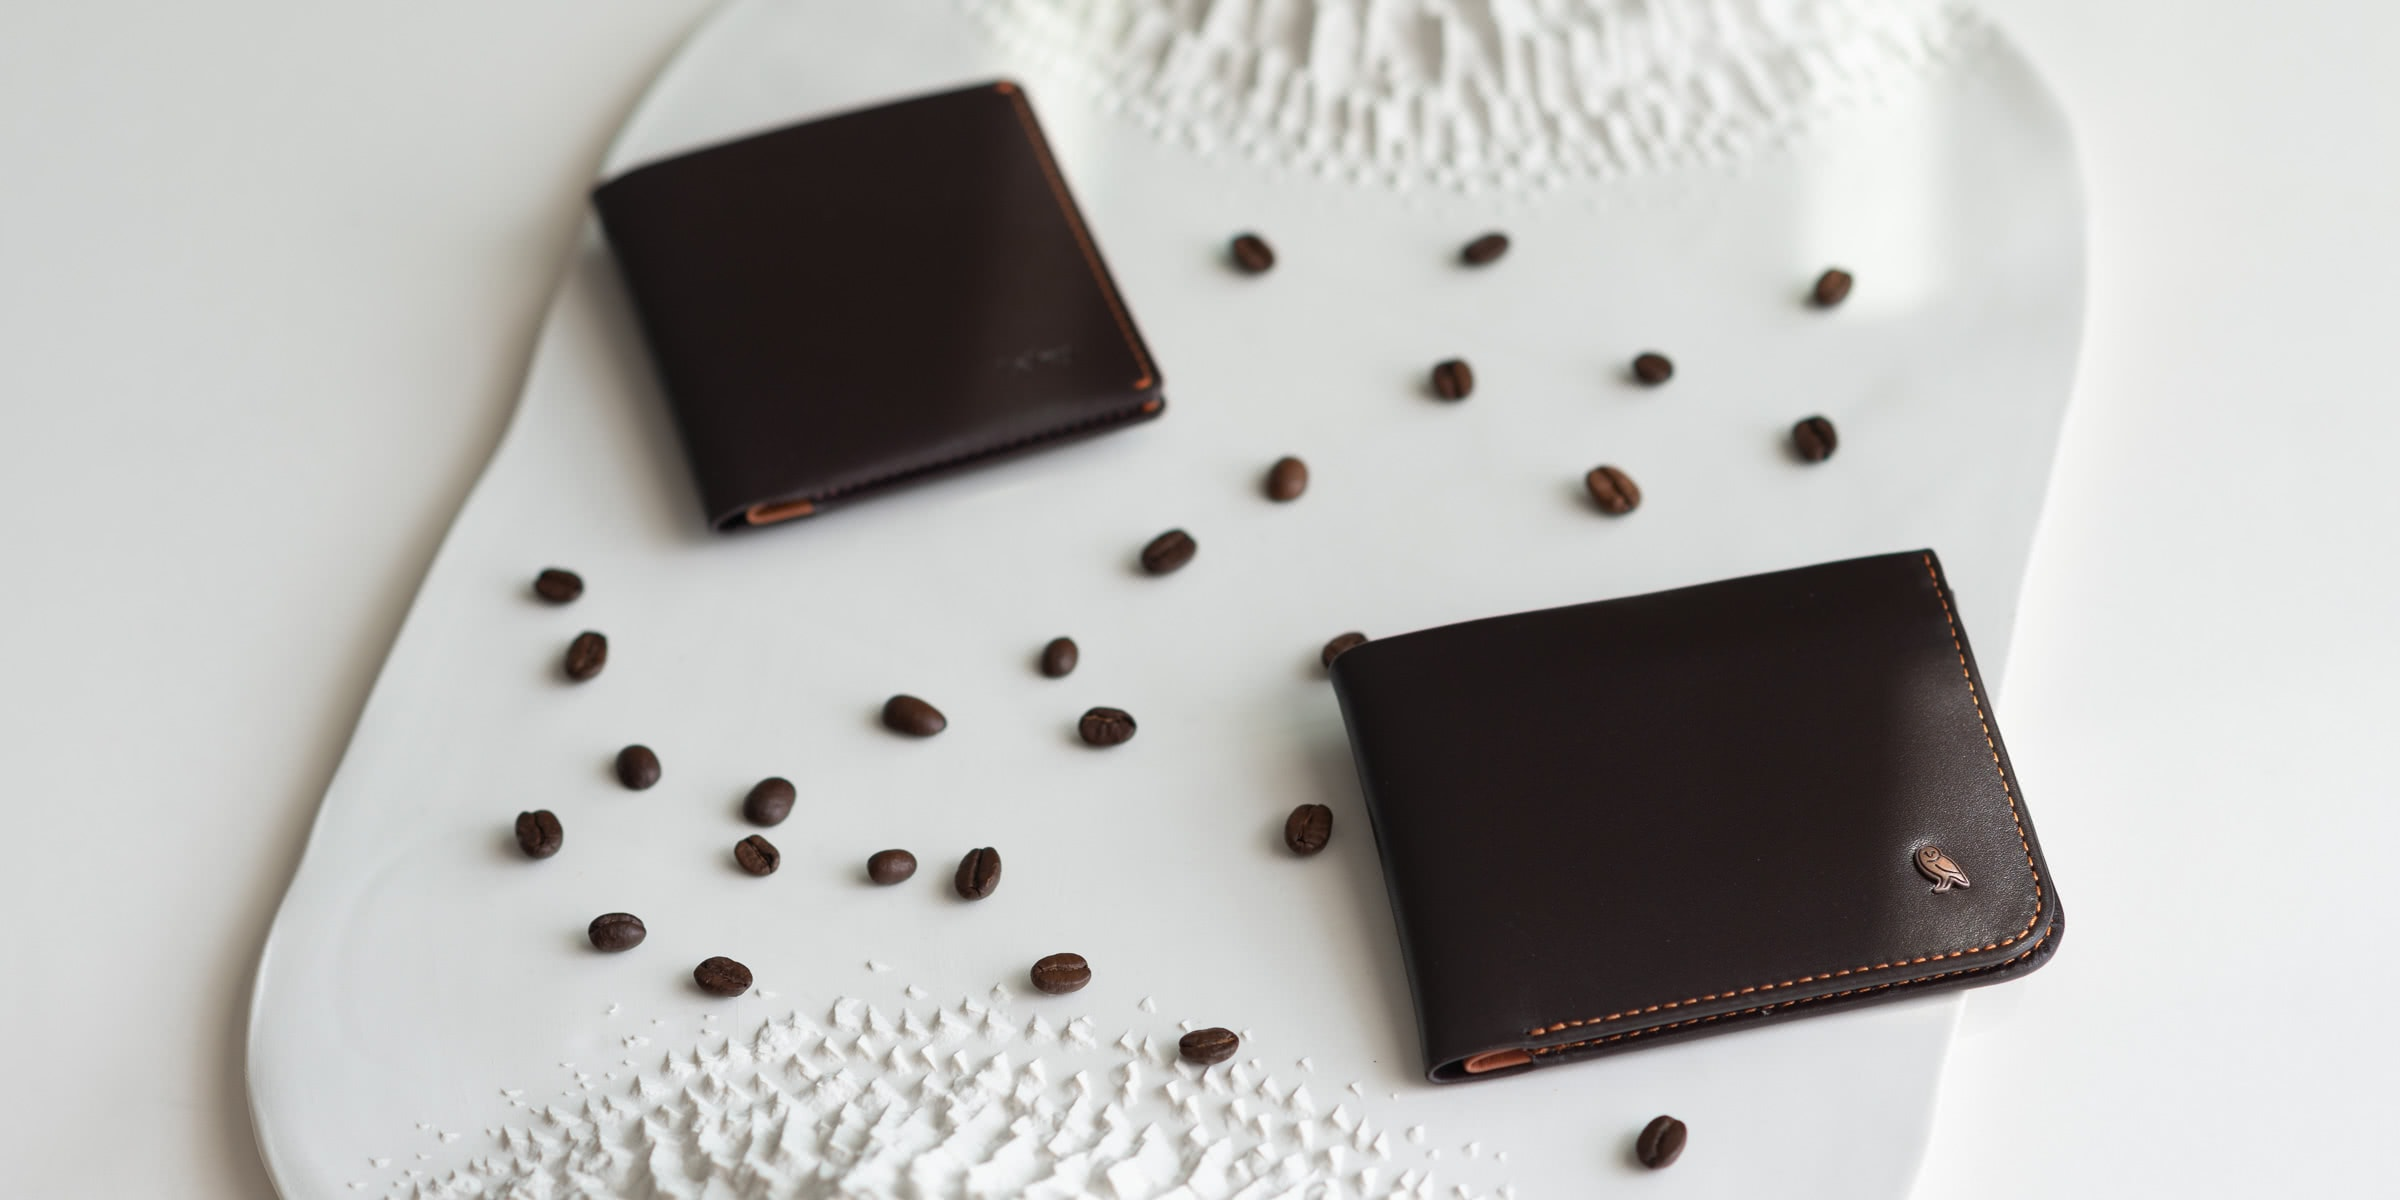 bellroy-wallets-review:-wave-goodbye-to-bulky-billfolds